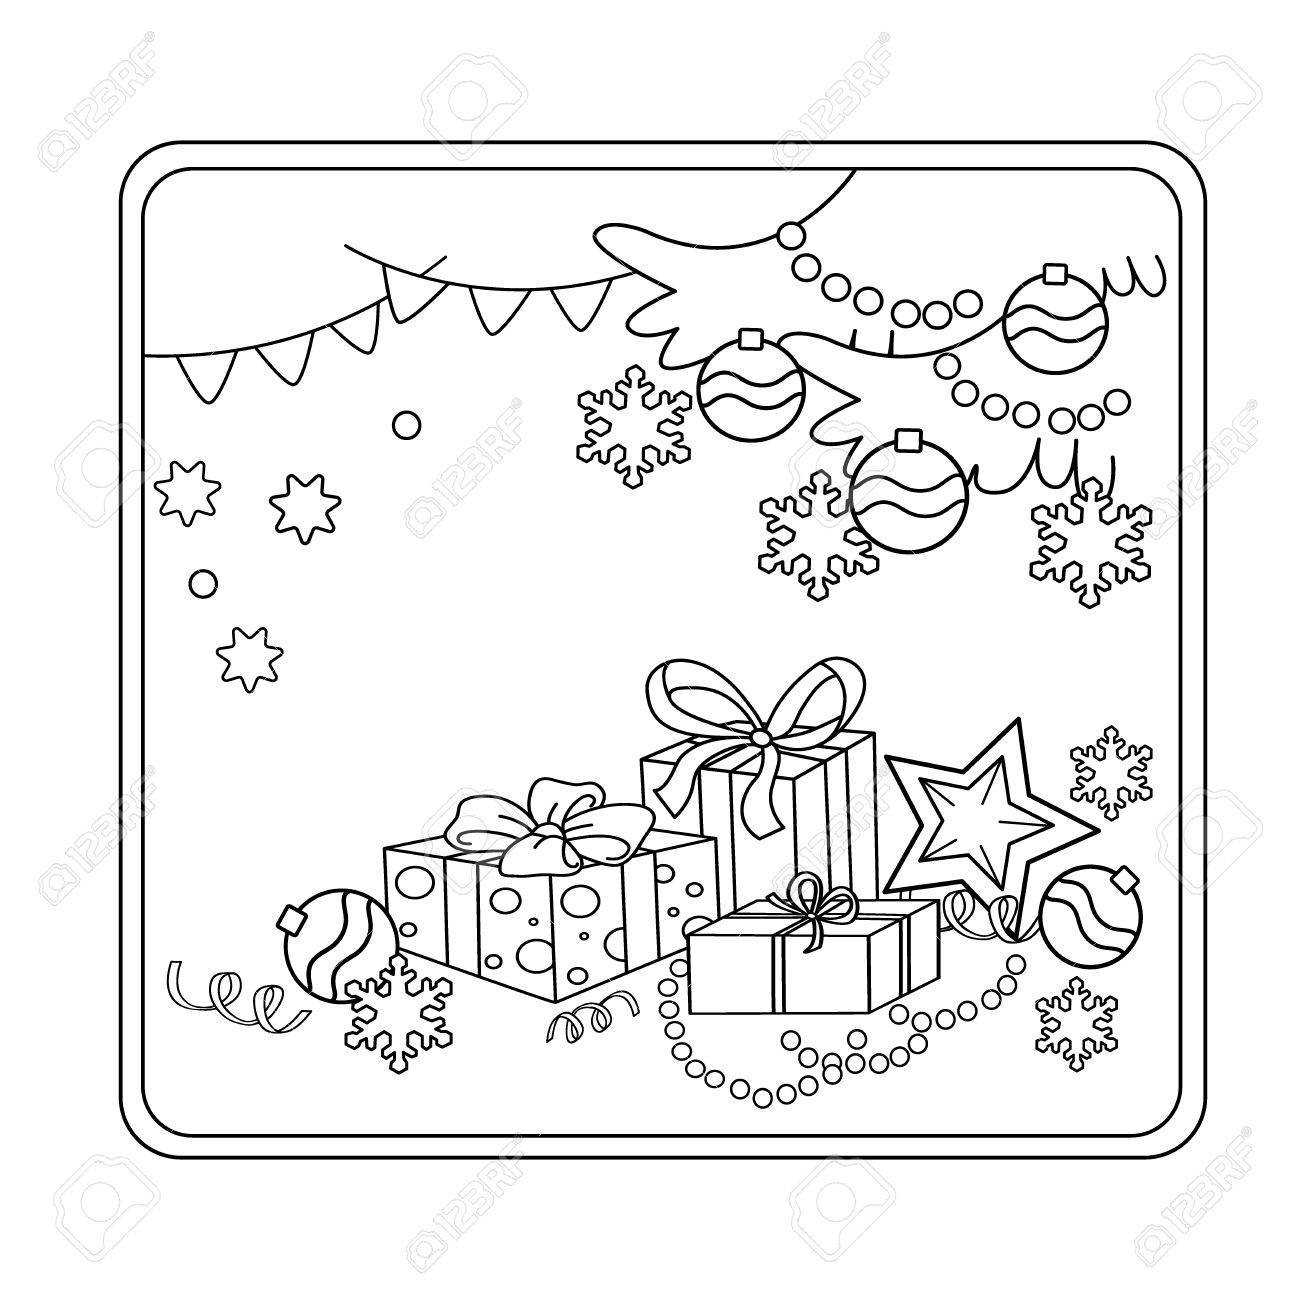 Coloring Page Outline Of Cartoon Christmas Ornaments And Gifts New Year